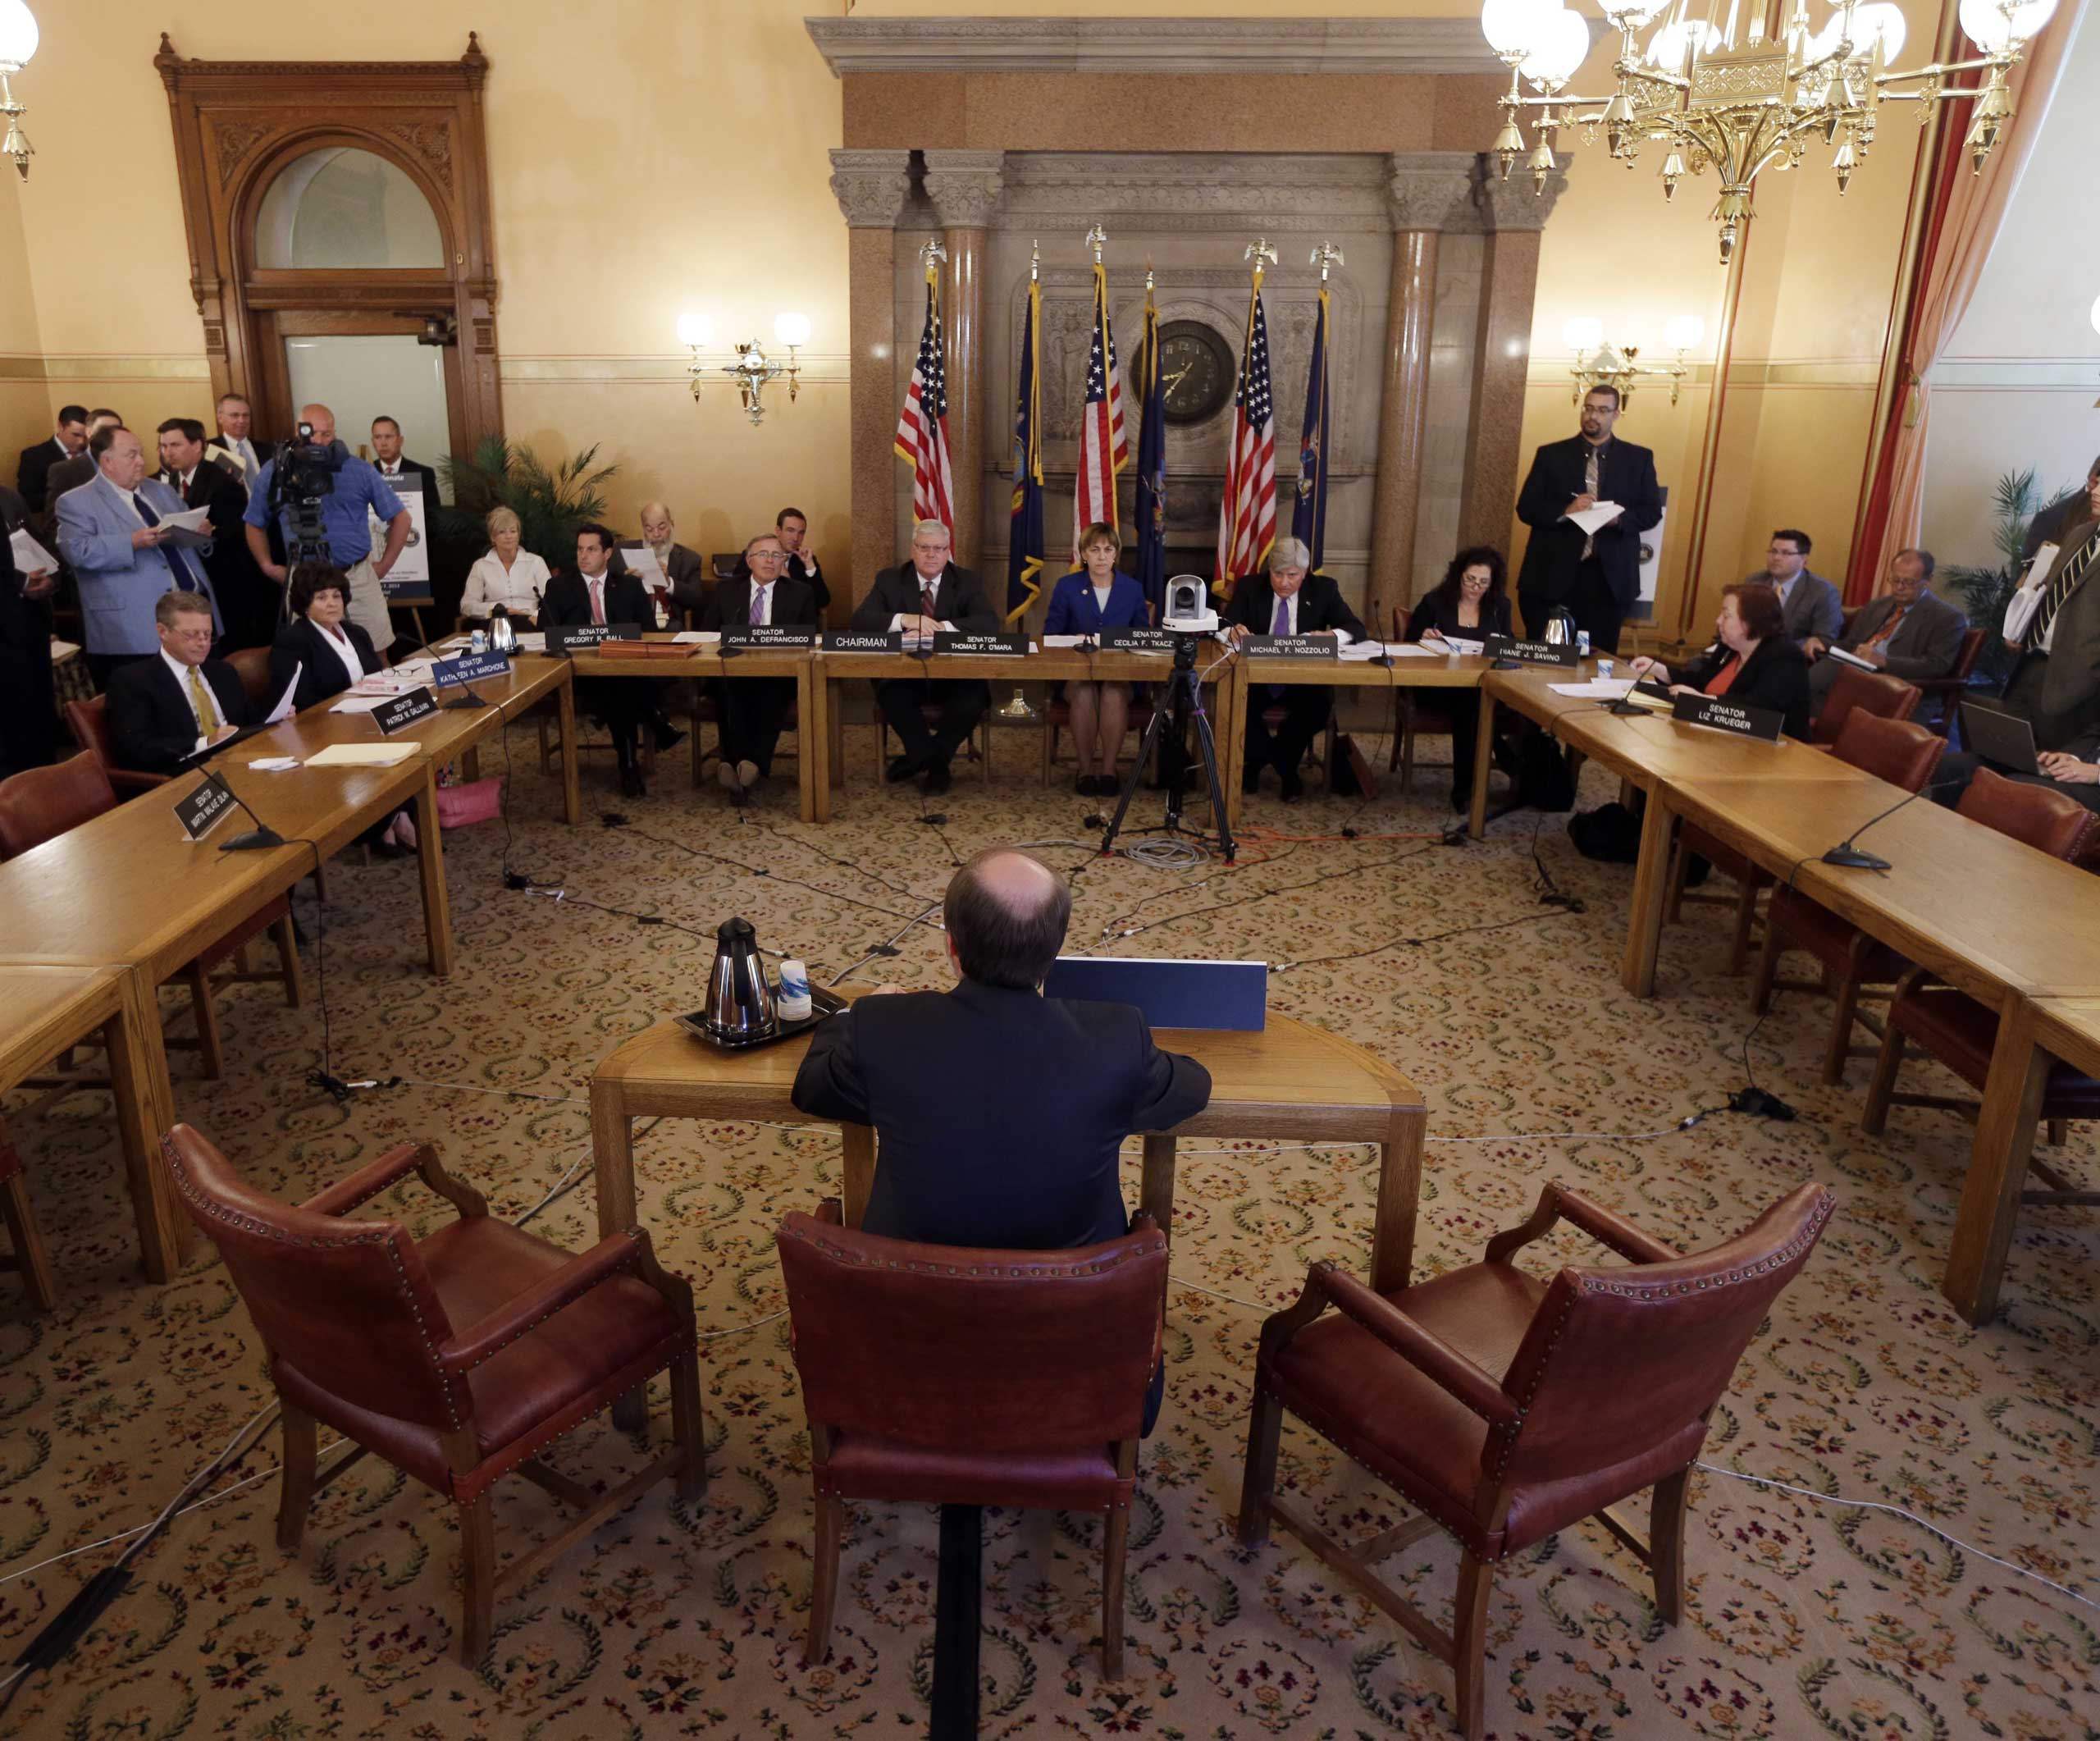 David Keating of the Center for Competitive Politics testifies during a Senate hearing highlighting abuses in the public financing of campaigns on May 7, 2013, in Albany, N.Y.